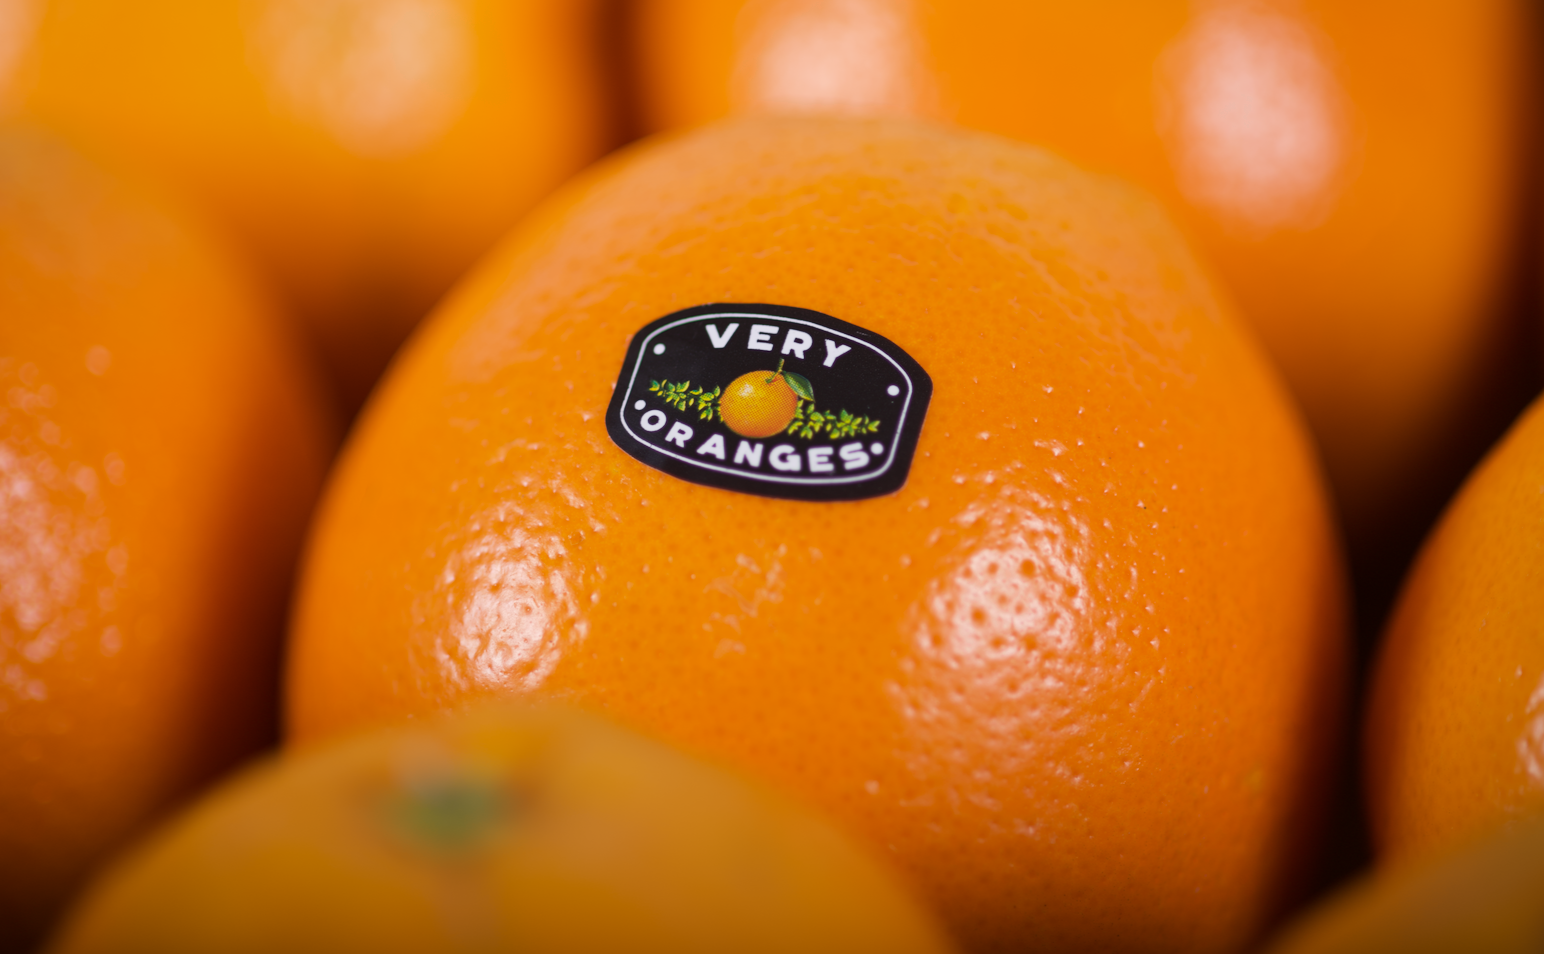 Very Oranges